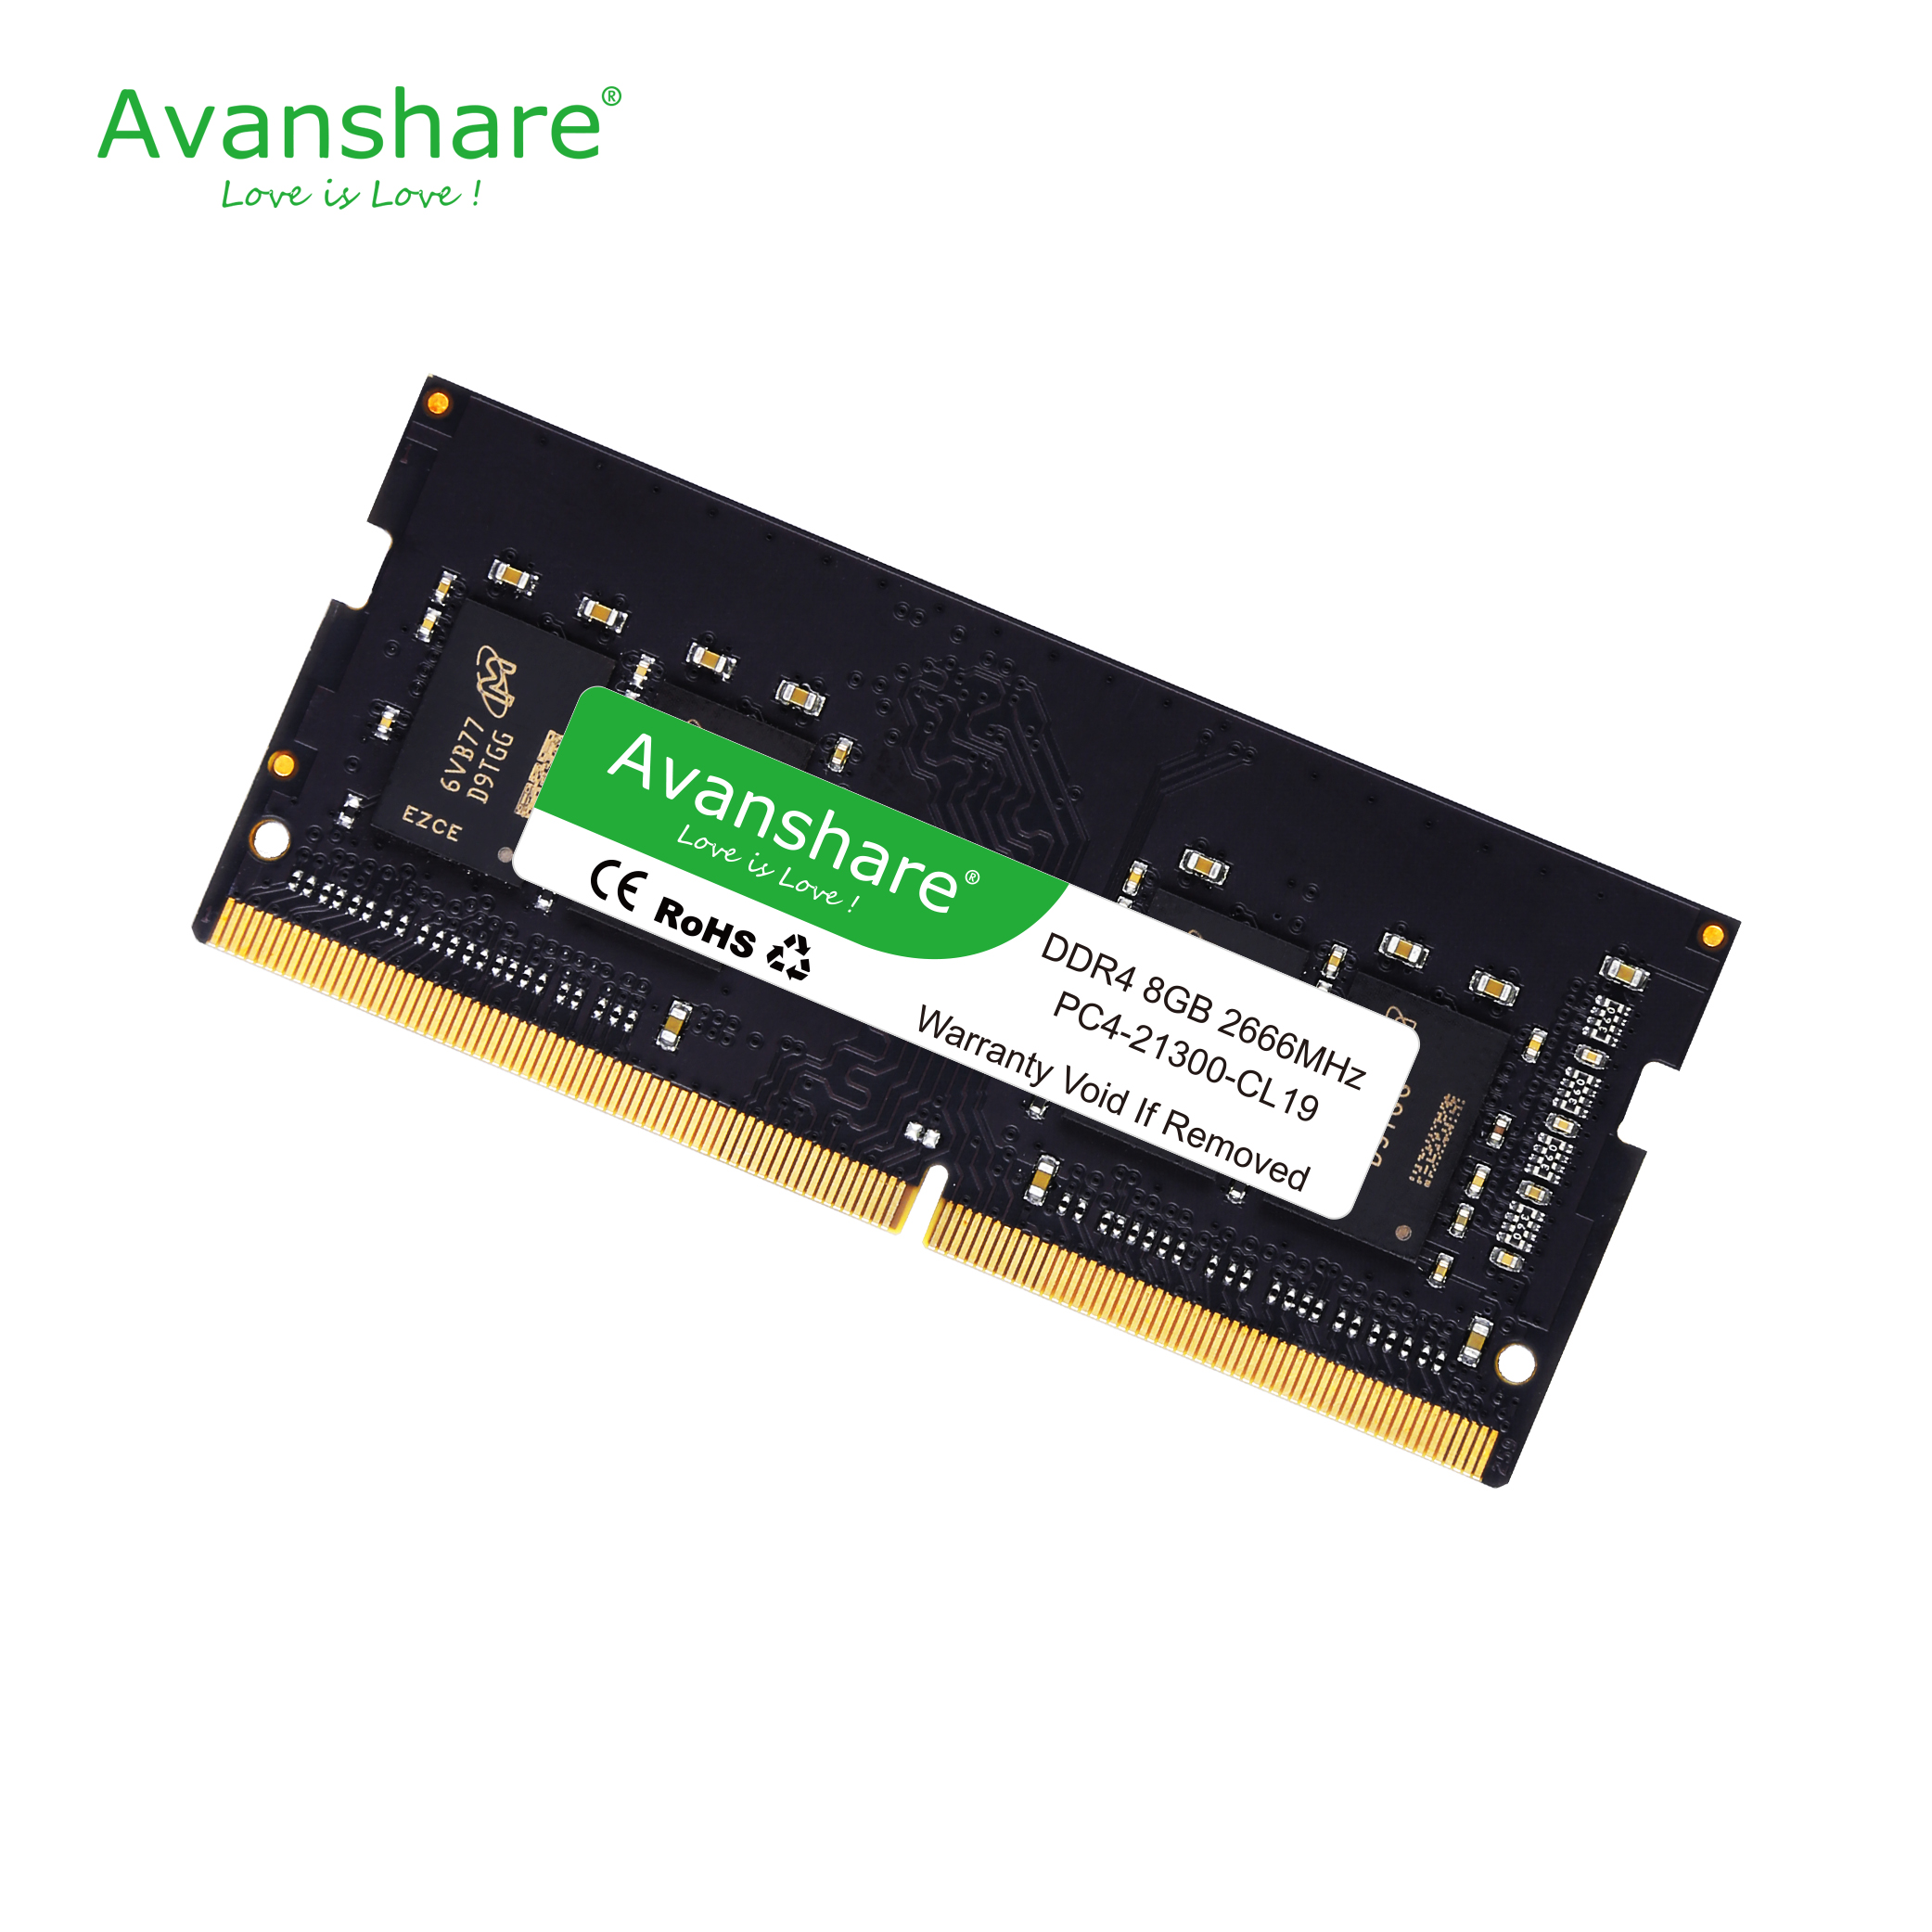 Avanshare <font><b>memoria</b></font> ram <font><b>ddr4</b></font> 4GB 8gb <font><b>16GB</b></font> 2666MHz 2400MHz RAM for Laptop <font><b>Notebook</b></font> <font><b>Memoria</b></font> Ram <font><b>DDR4</b></font> free shipping by Ali express image